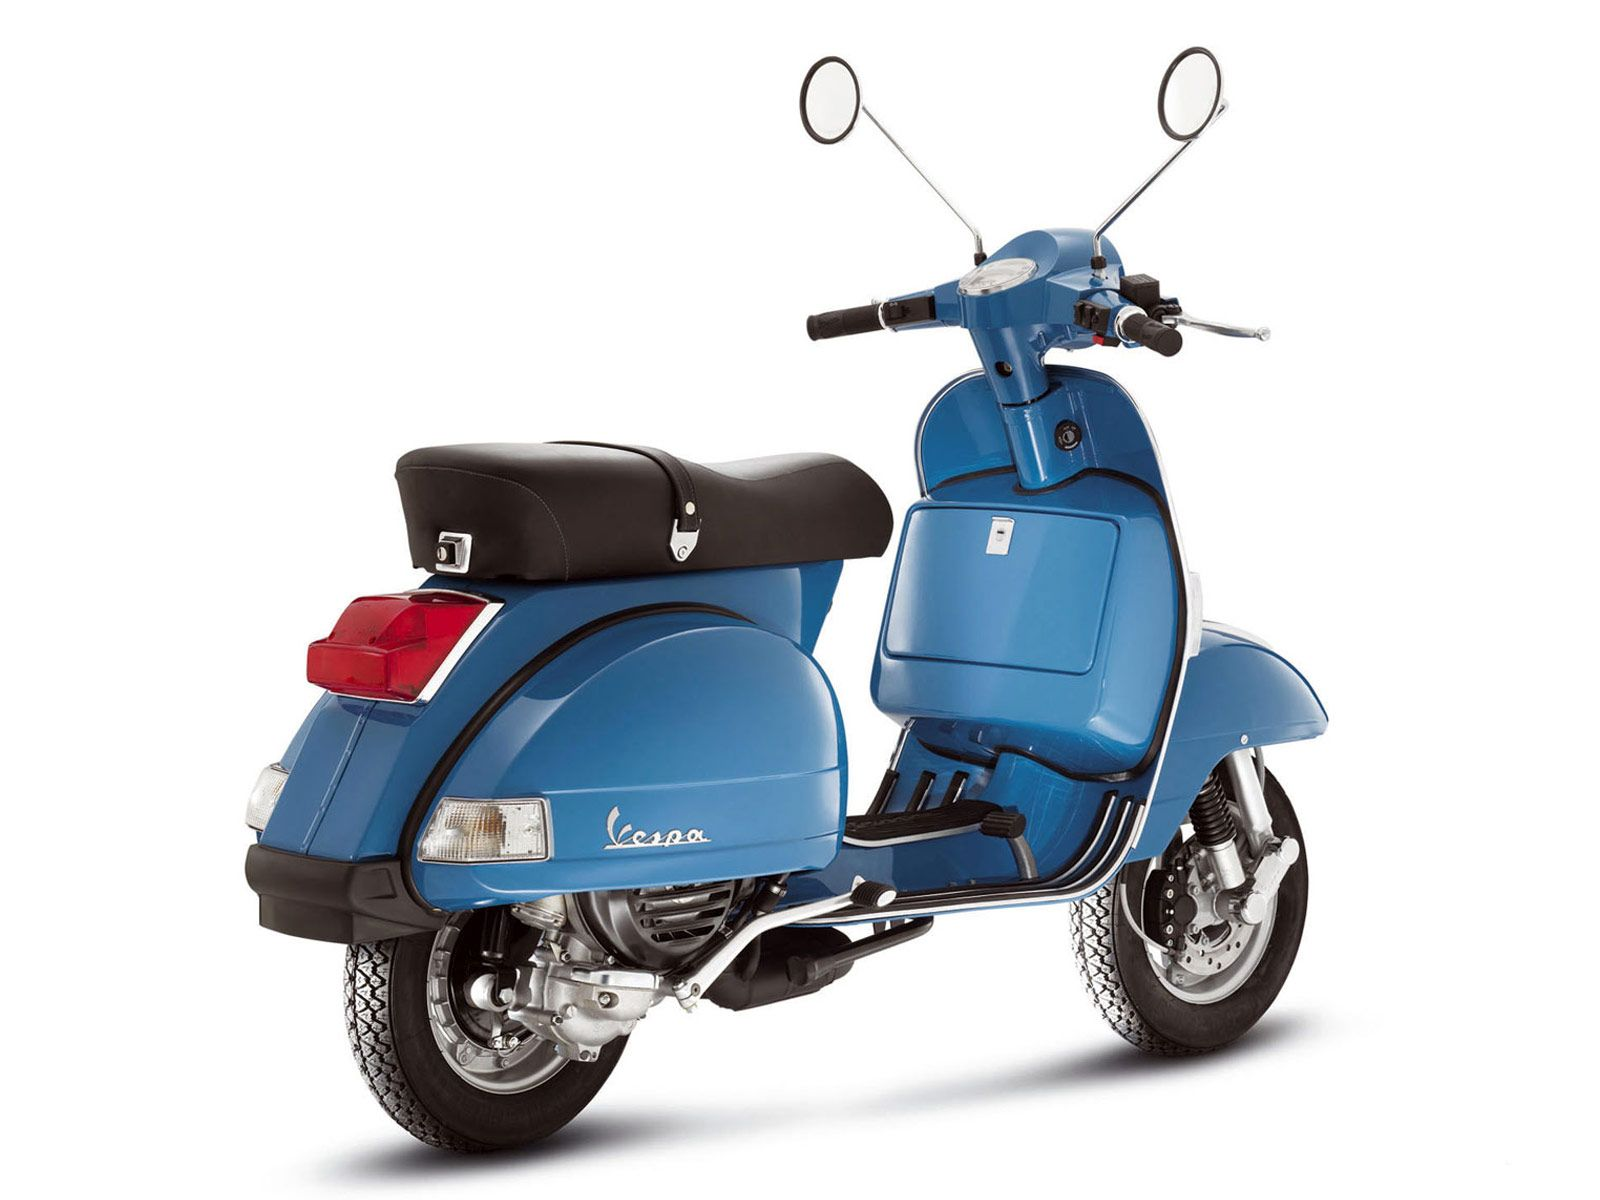 4d7b279 Vespa Lx 4 Tempi Scooter Service Repair Manual